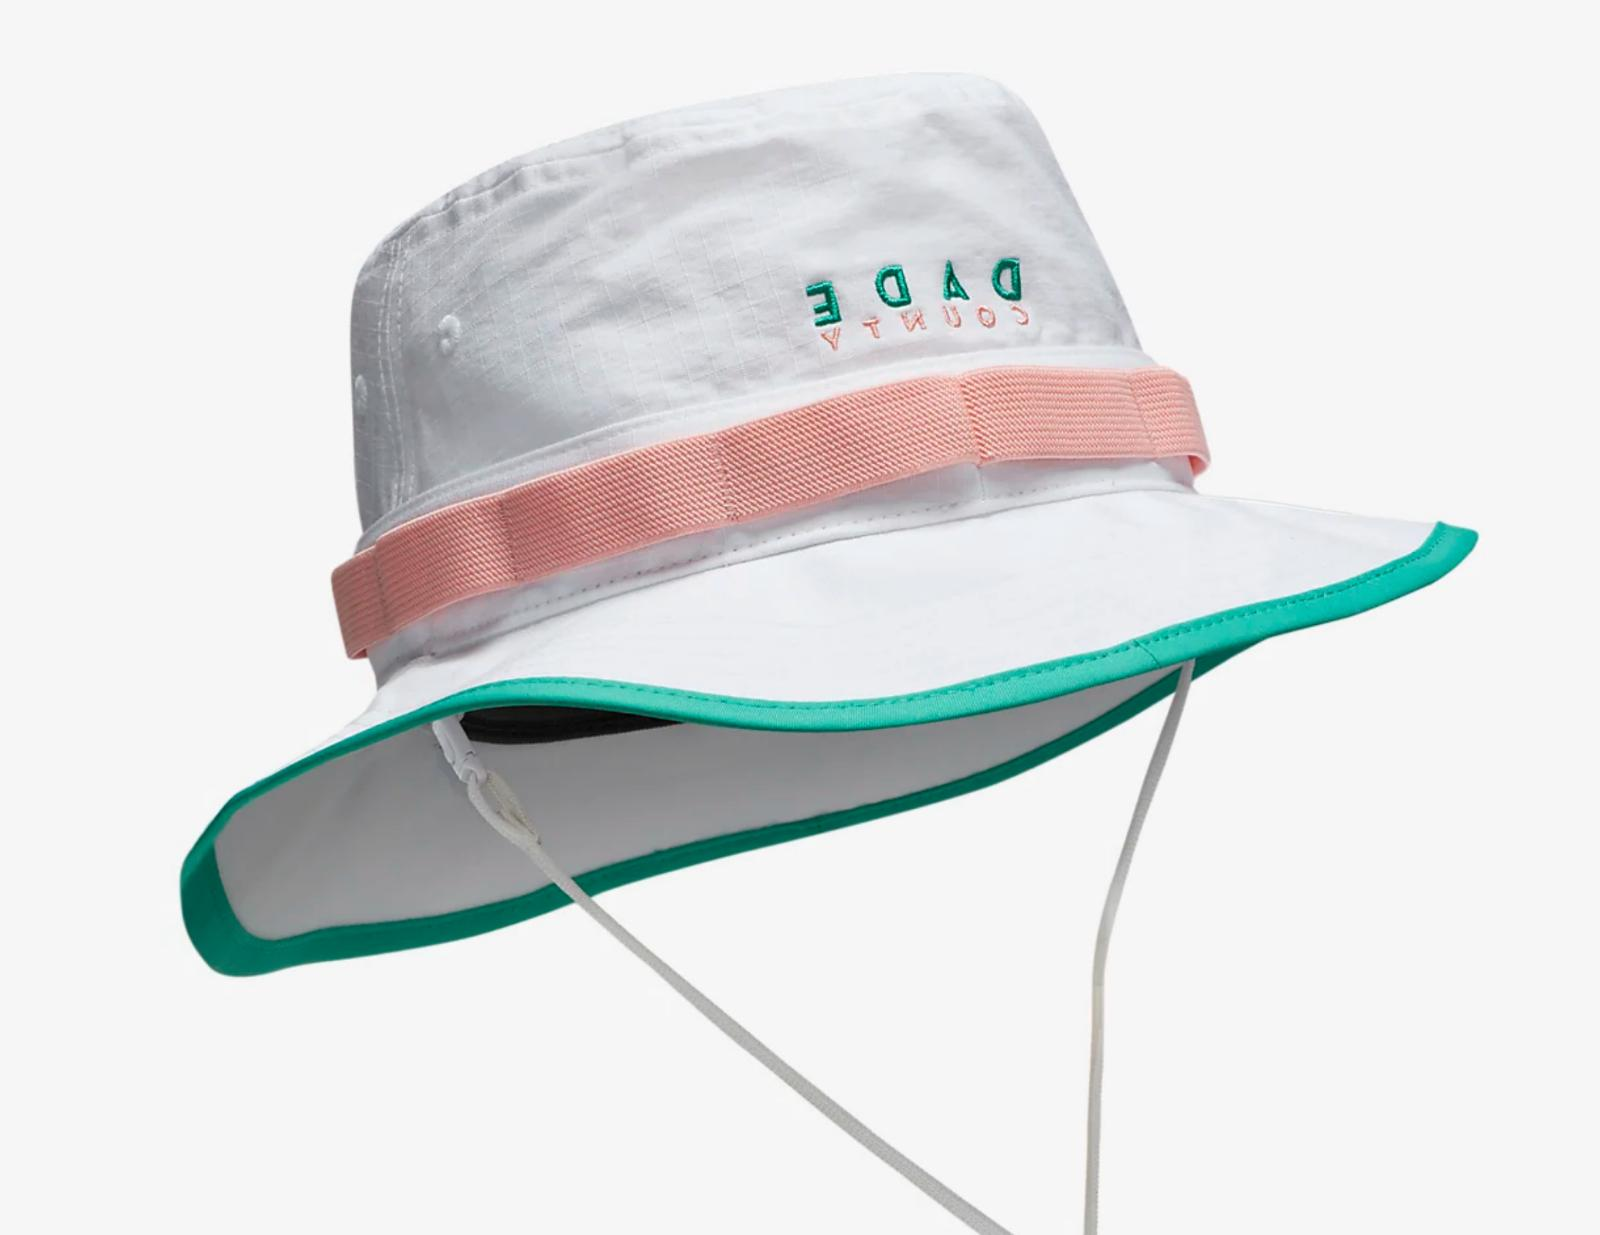 Nike Miami 305 Dade Canes Pink Teal Bucket